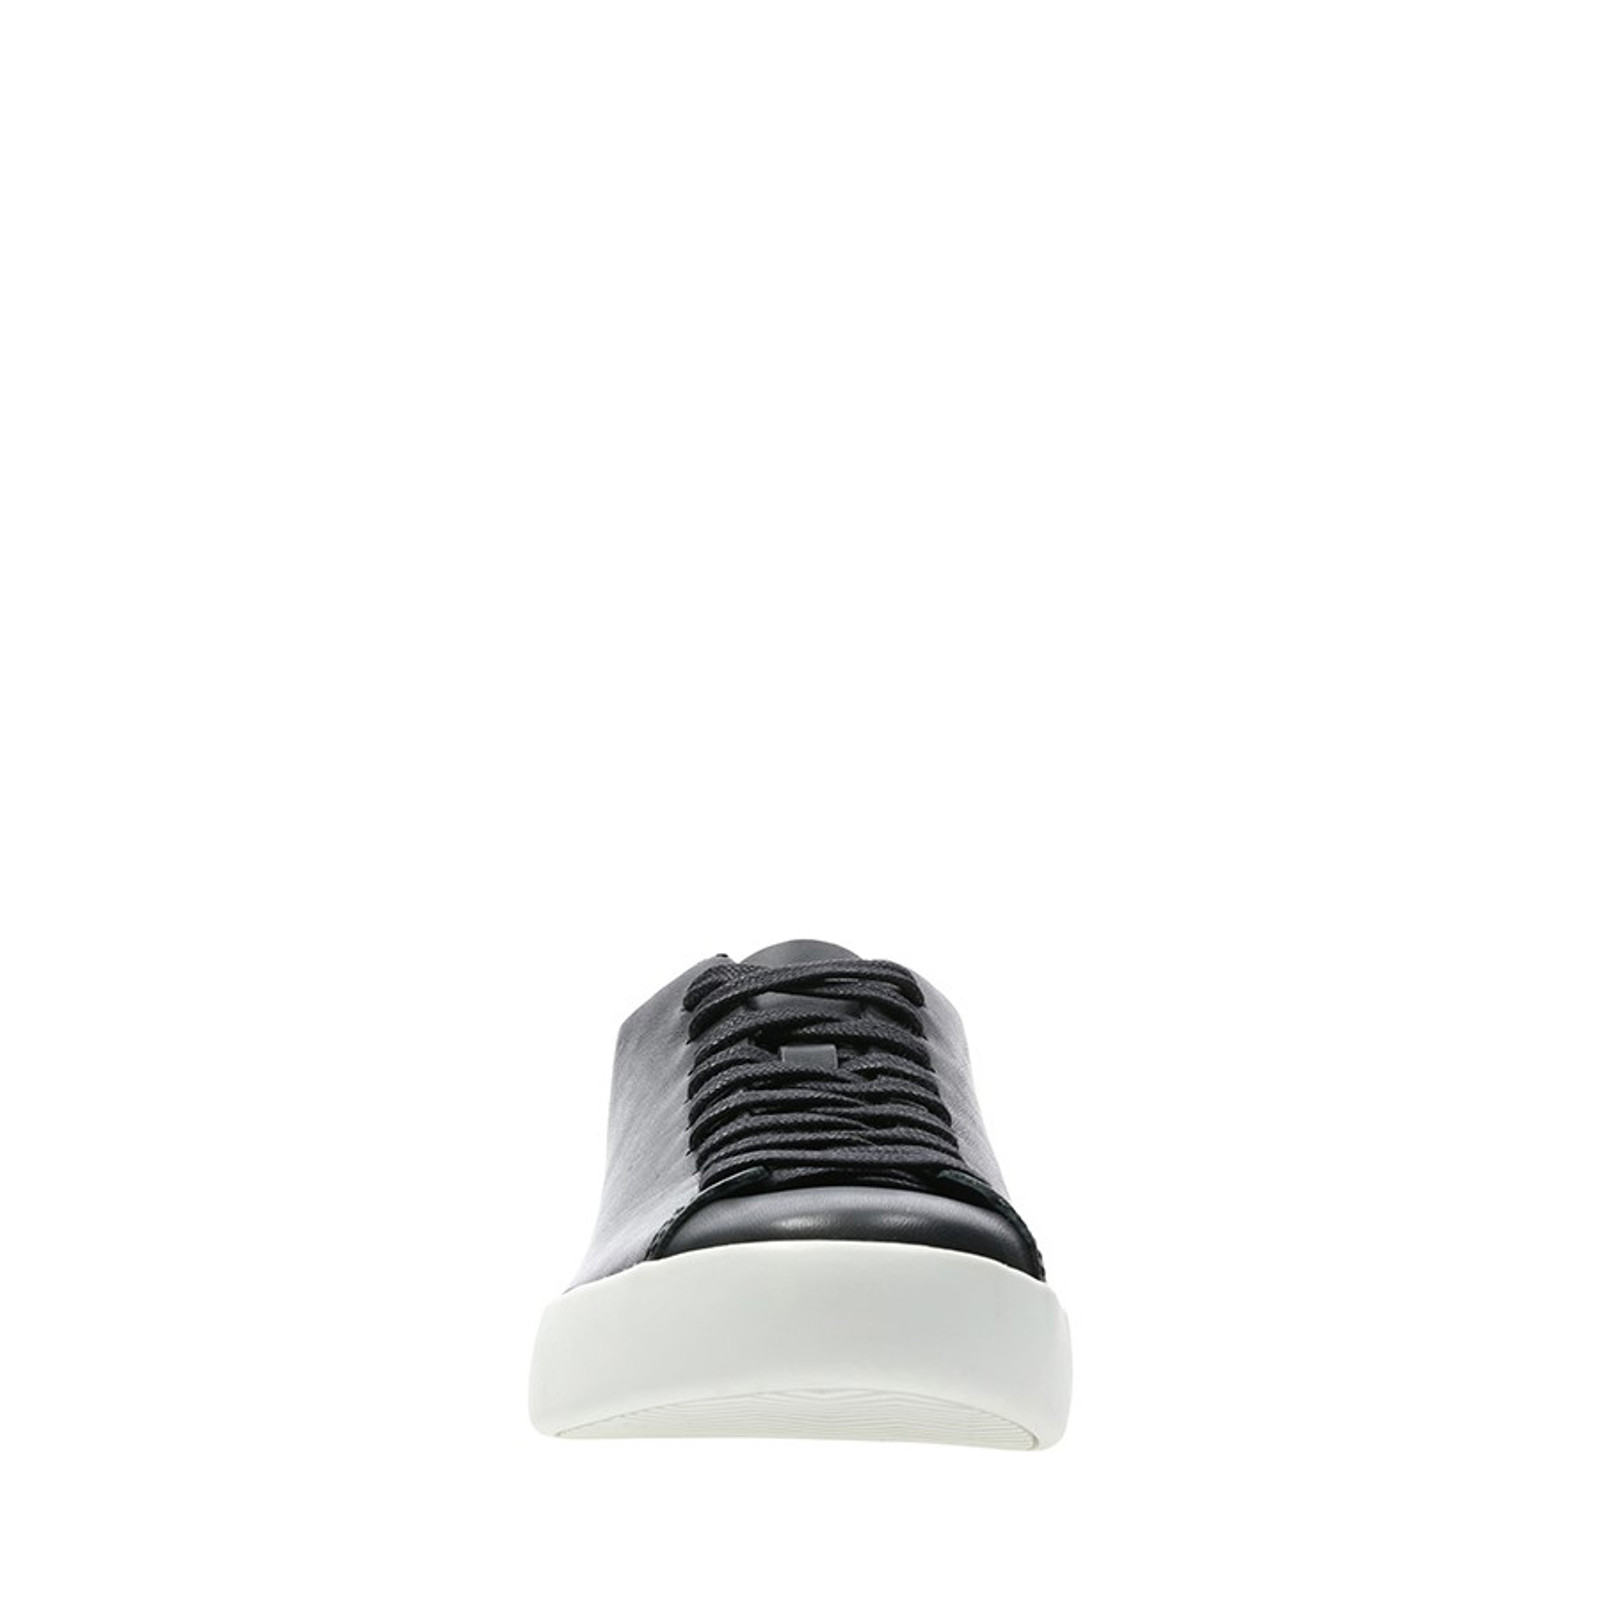 Clarks Womens ARLO LACE Black Leather